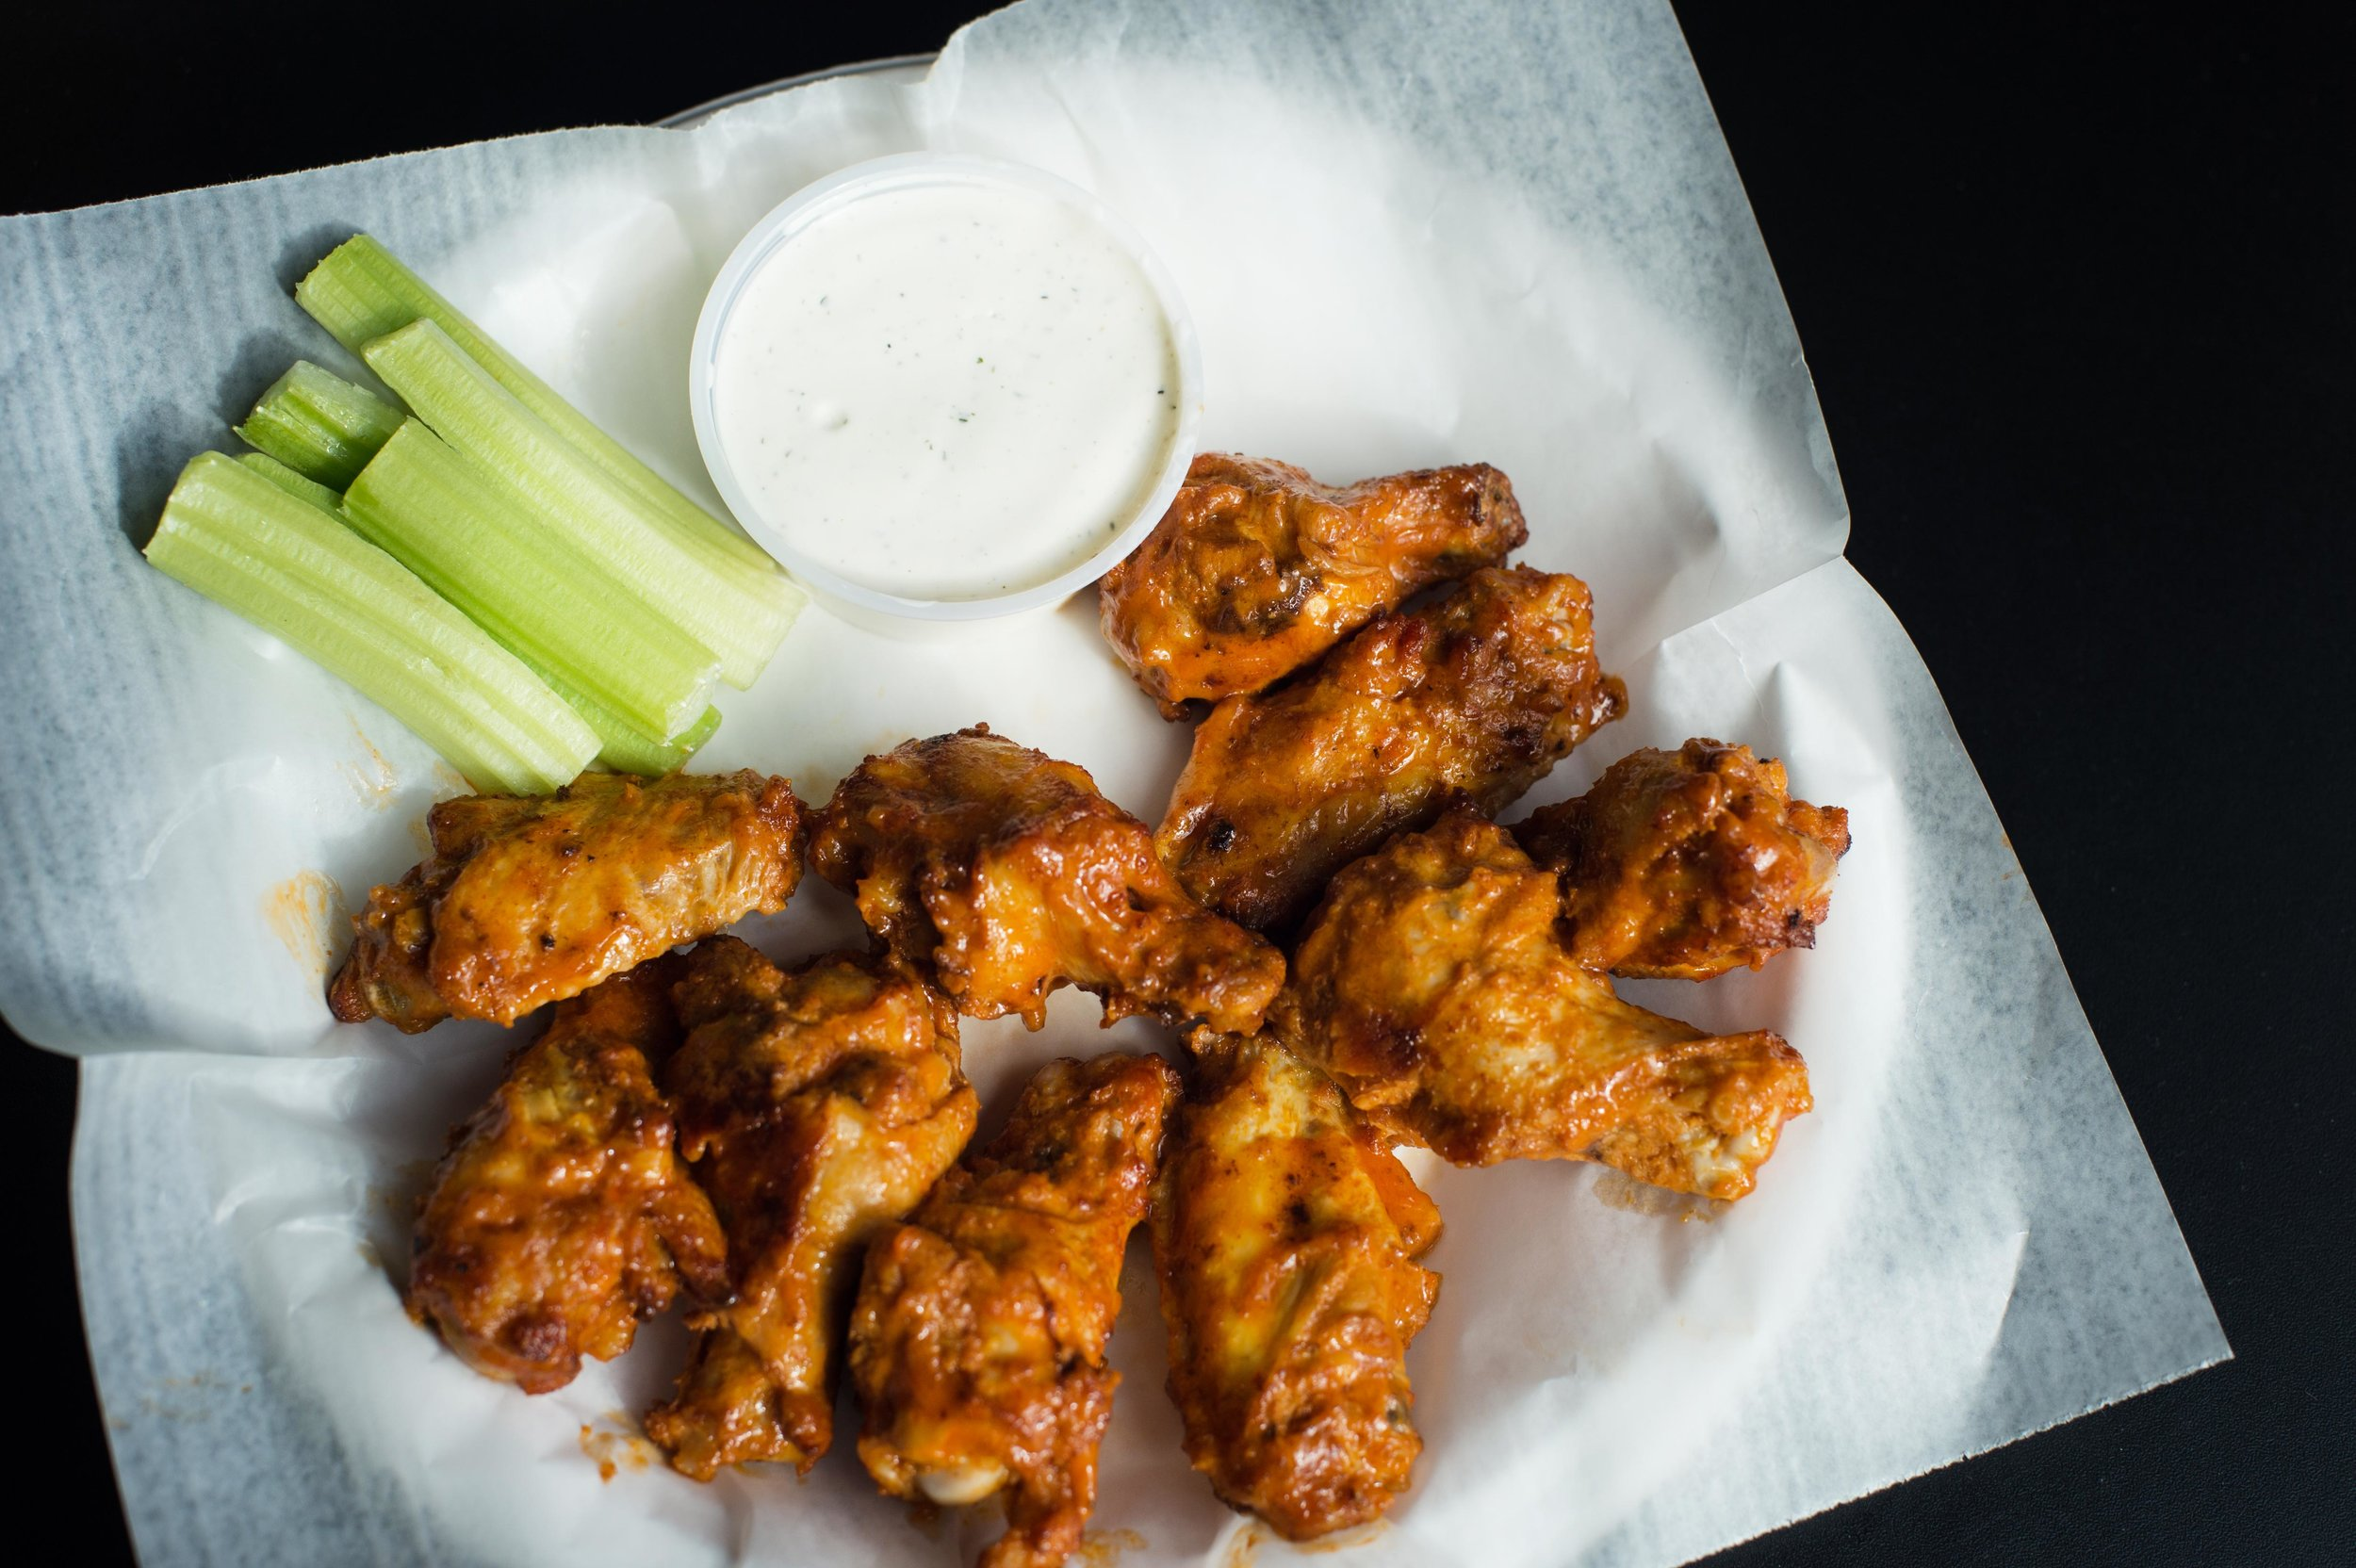 Buffalo Wings - 10 tasty wings served with celery sticks & your choice of dipping sauce!